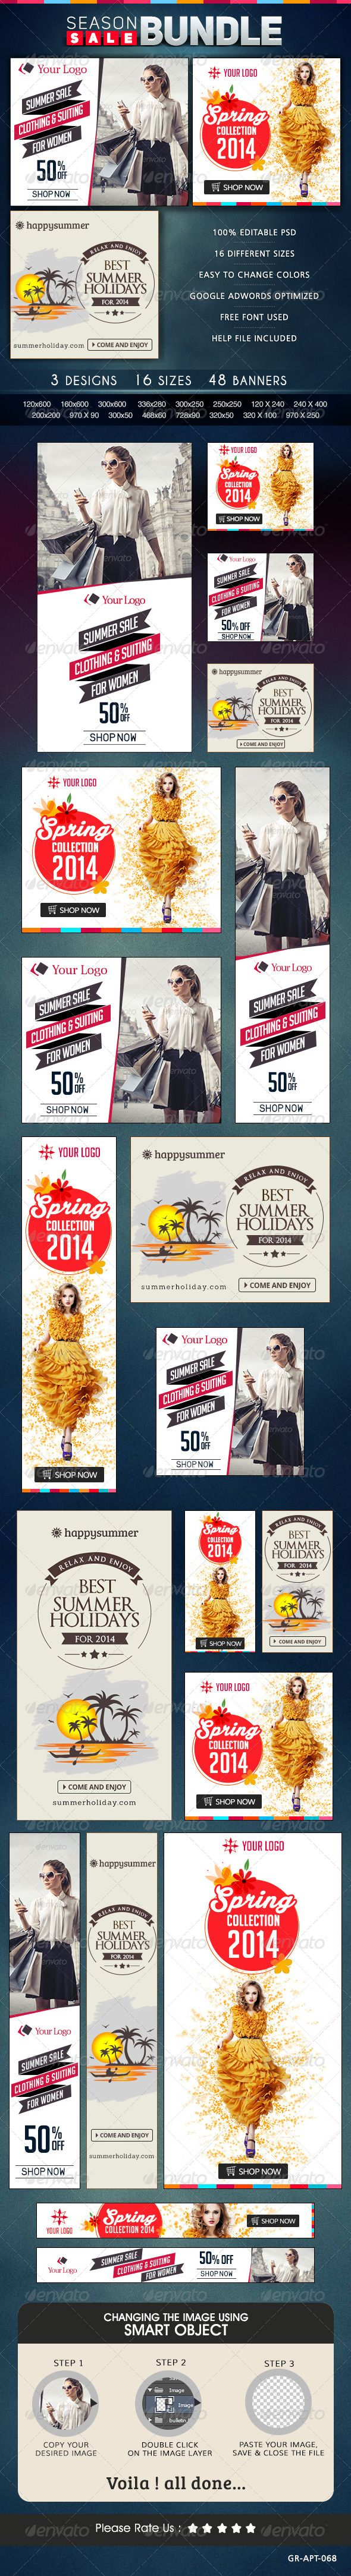 Season Sale Banner Bundle Template PSD | Buy and Download: http://graphicriver.net/item/season-sale-banner-bundle-3-sets/8567326?WT.ac=category_thumb&WT.z_author=doto&ref=ksioks